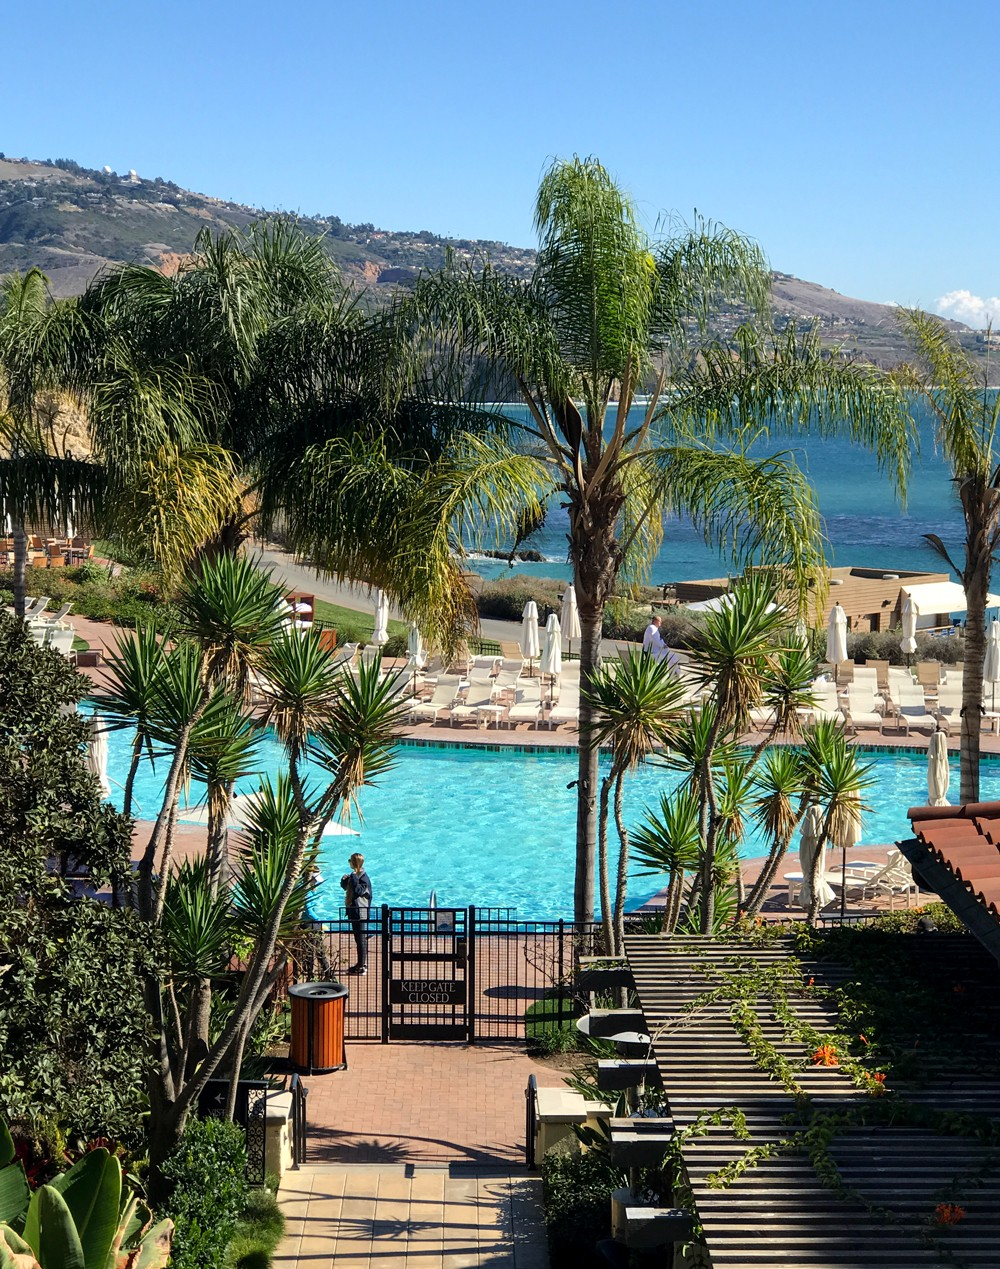 Best Weekend Trips from LA - Terranea Pool View - Wanderlust Wednesday Terrenea Resort Review by popular Los Angeles blogger My Beauty Bunny